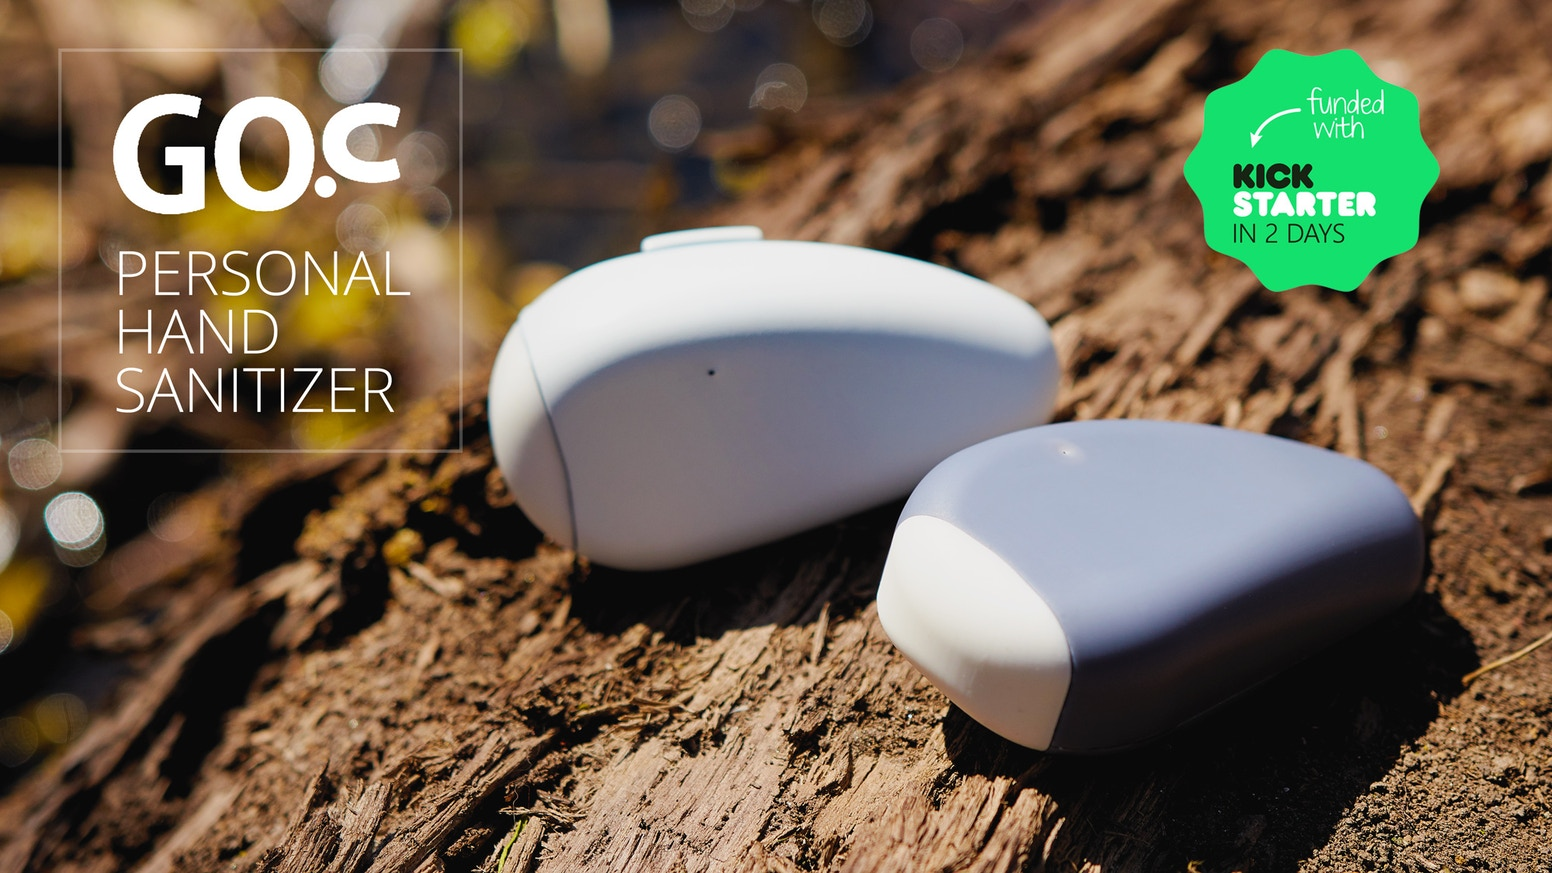 Eco-friendly, minimalistic and easy to use. Created for convenience with a push of a button. Reinvented for everyday use.